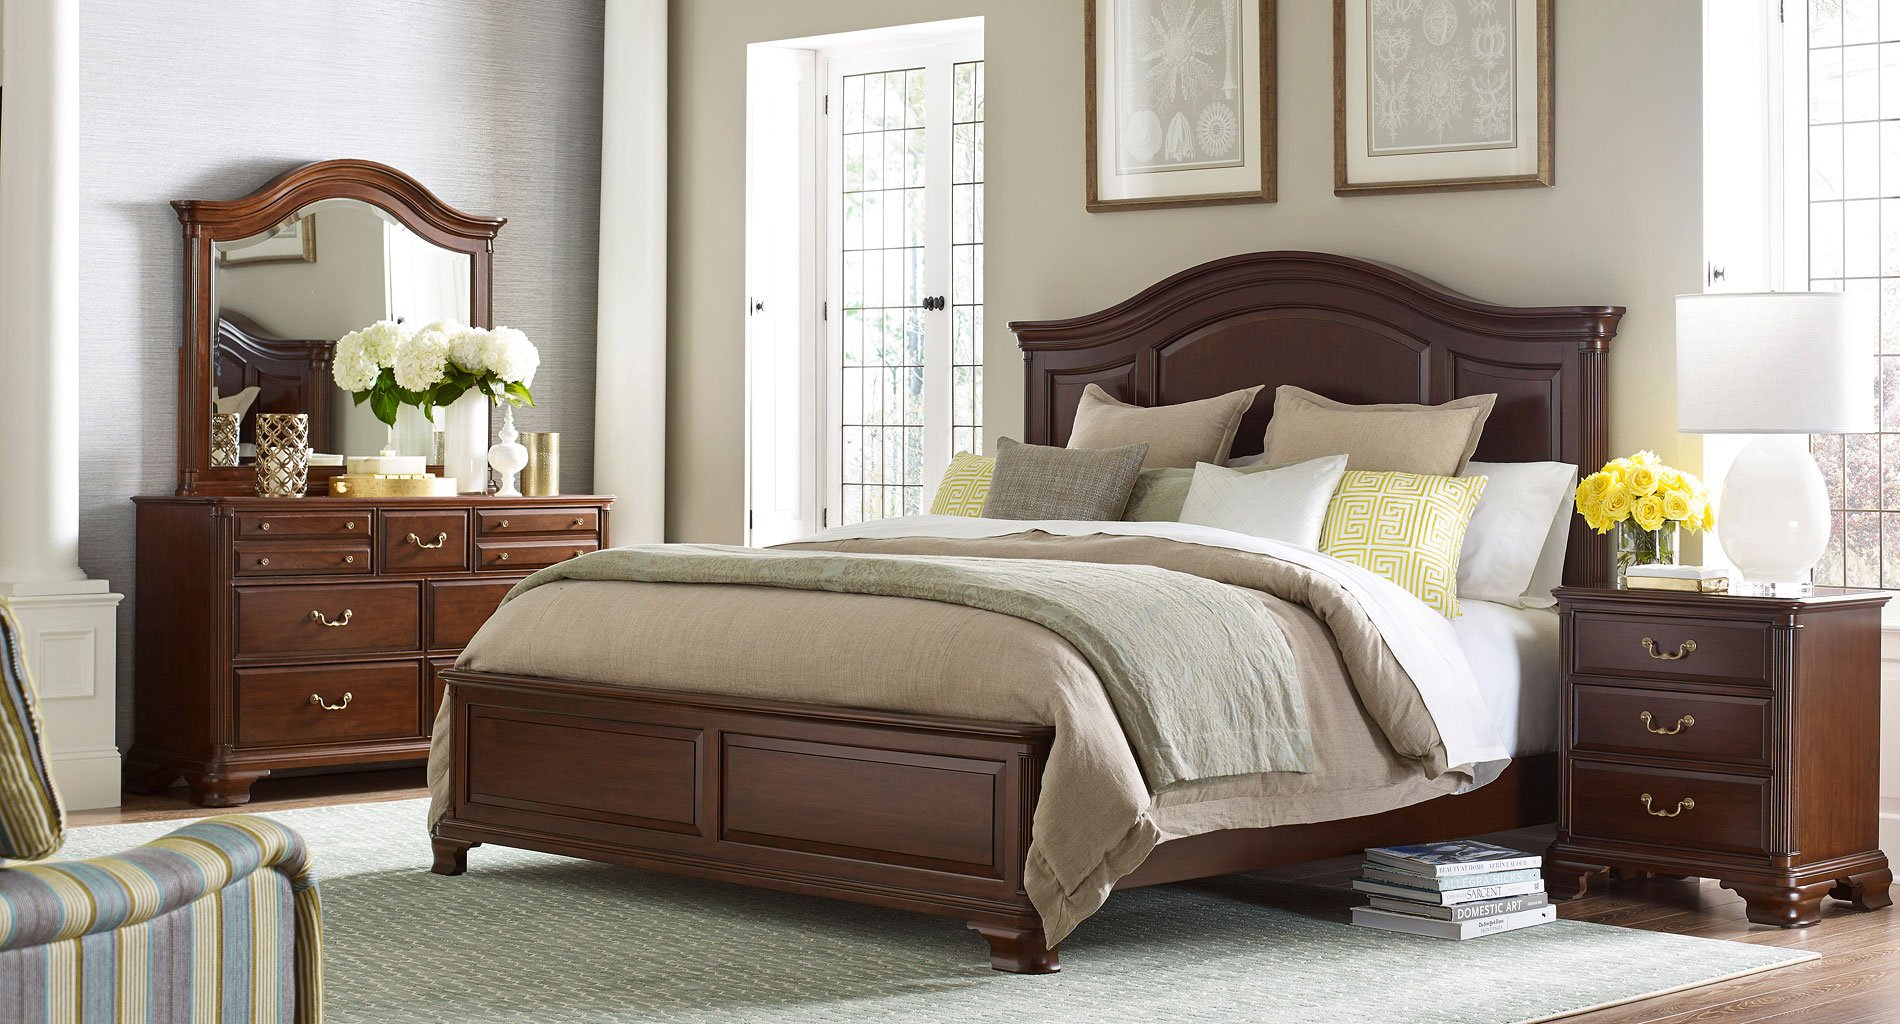 Hadleigh Arched Panel Bedroom Set